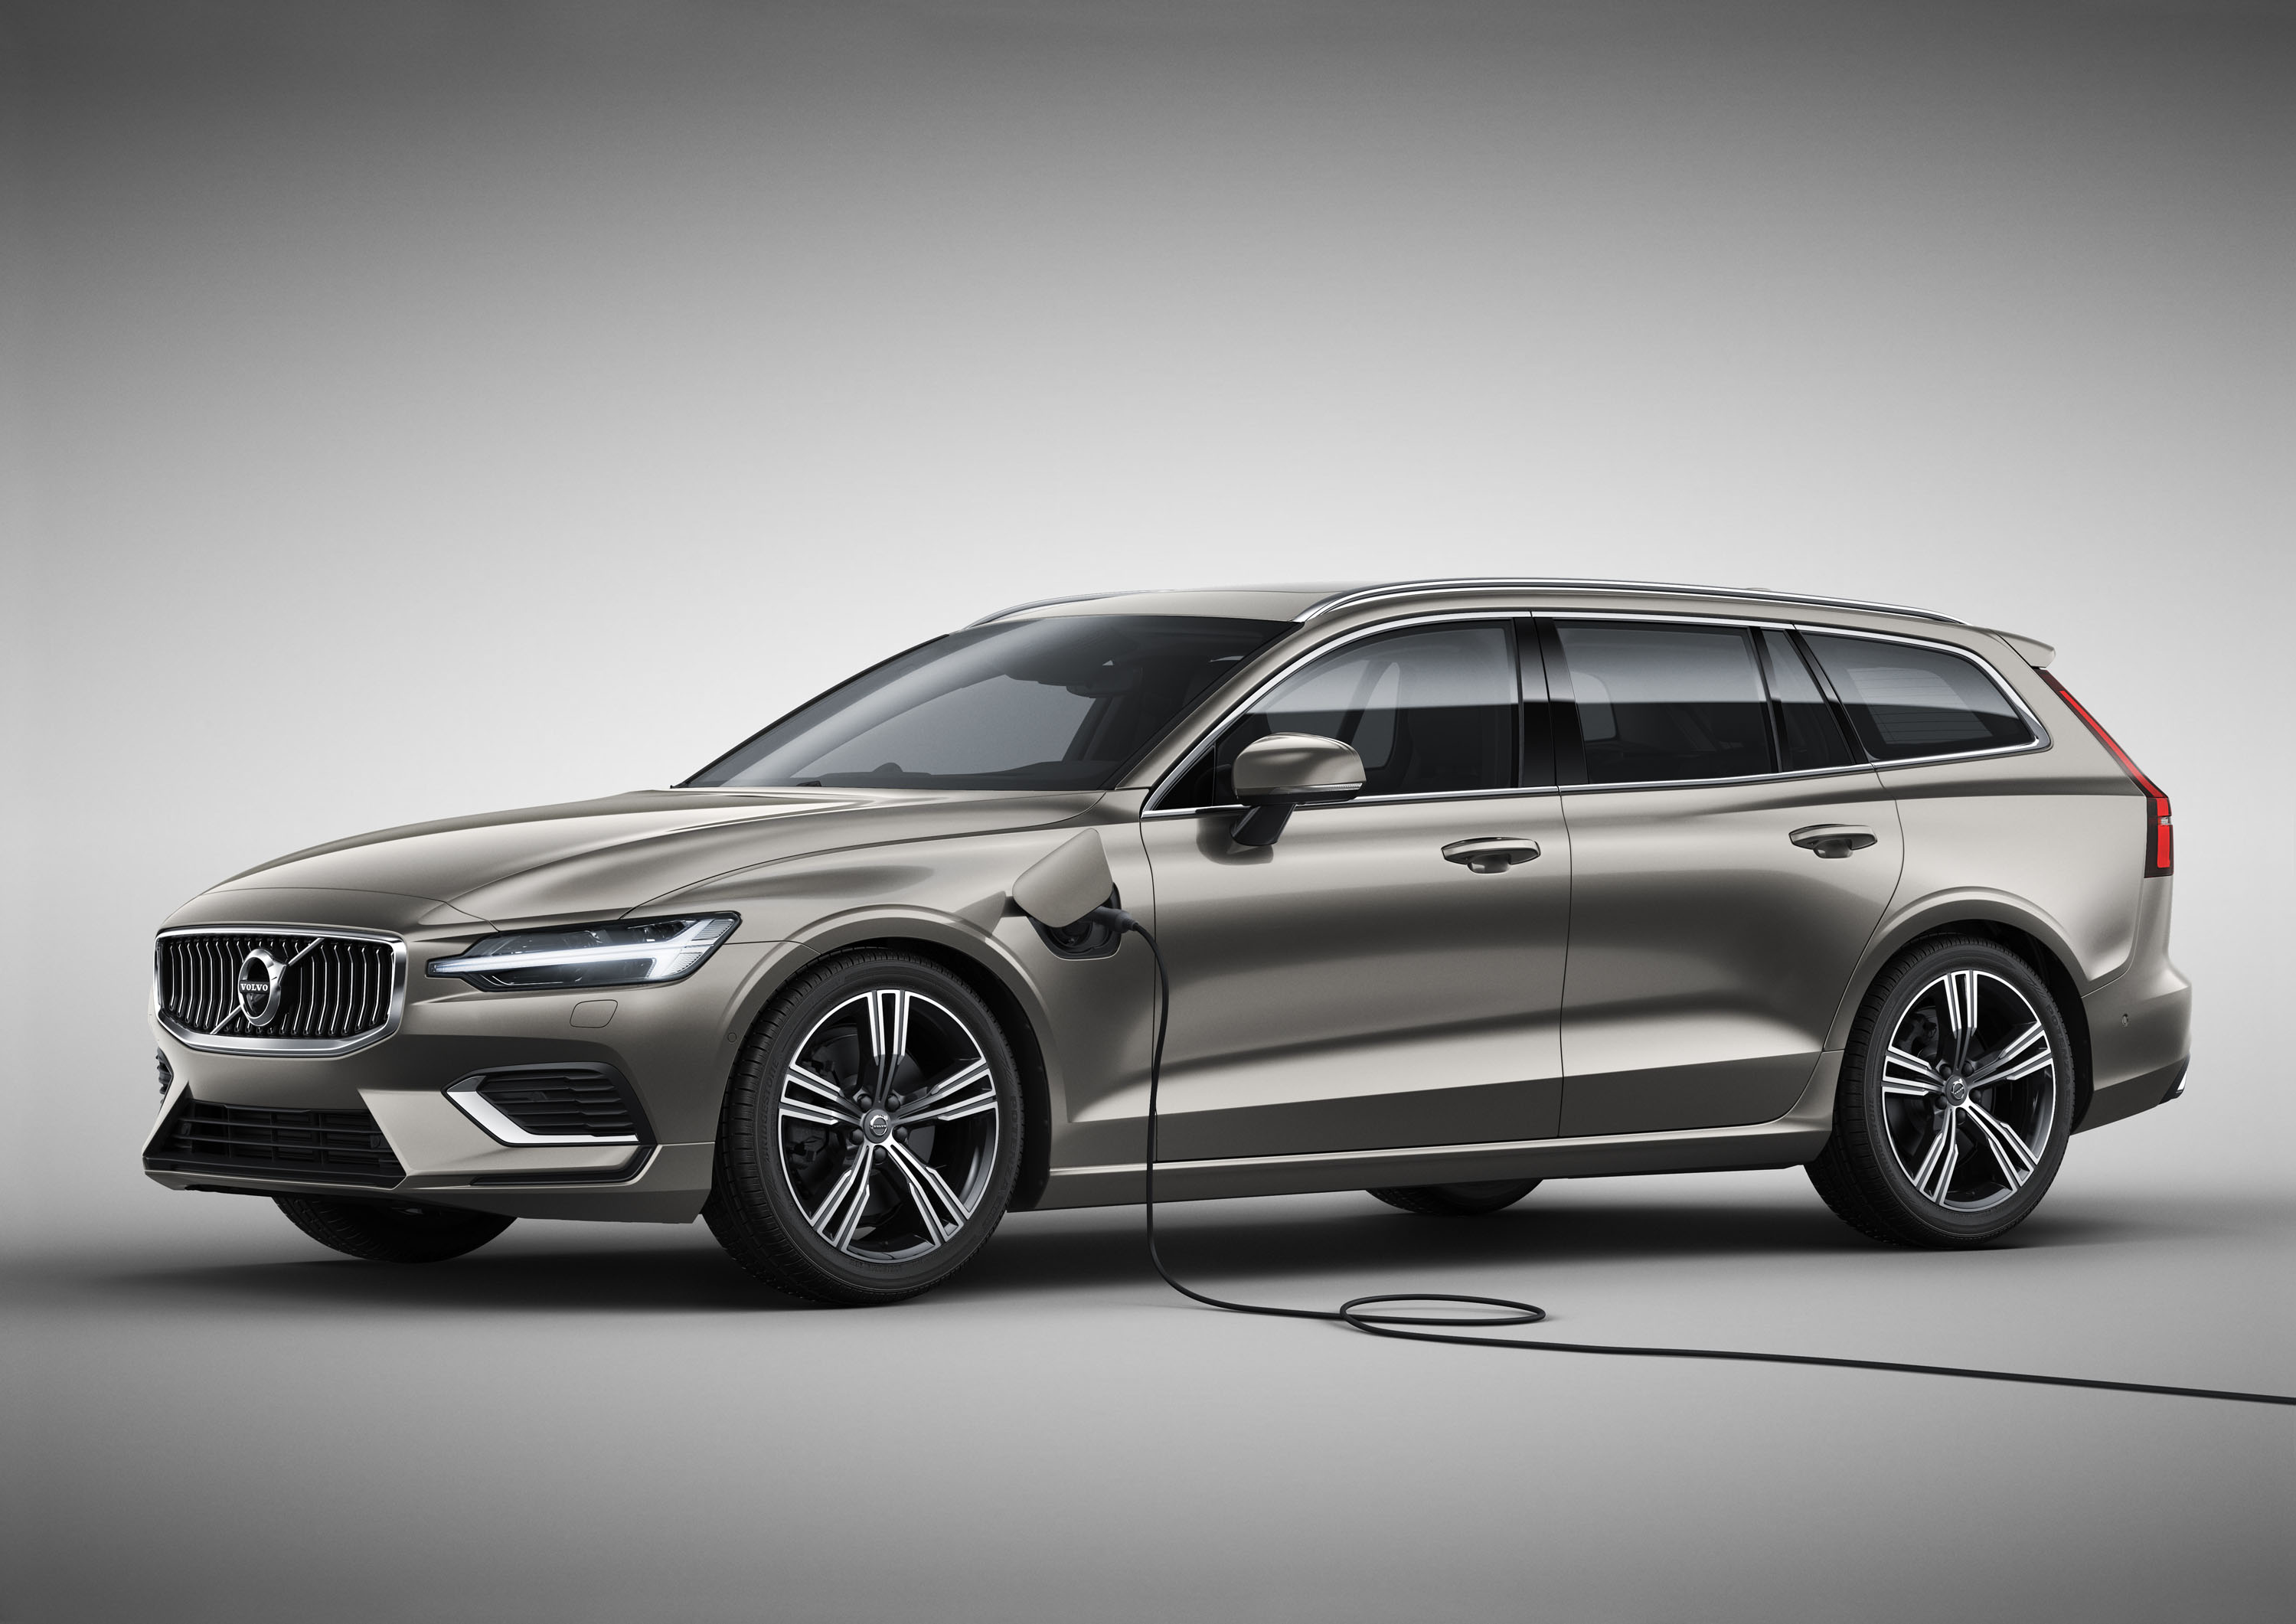 74 The Best 2019 Volvo V70 Price